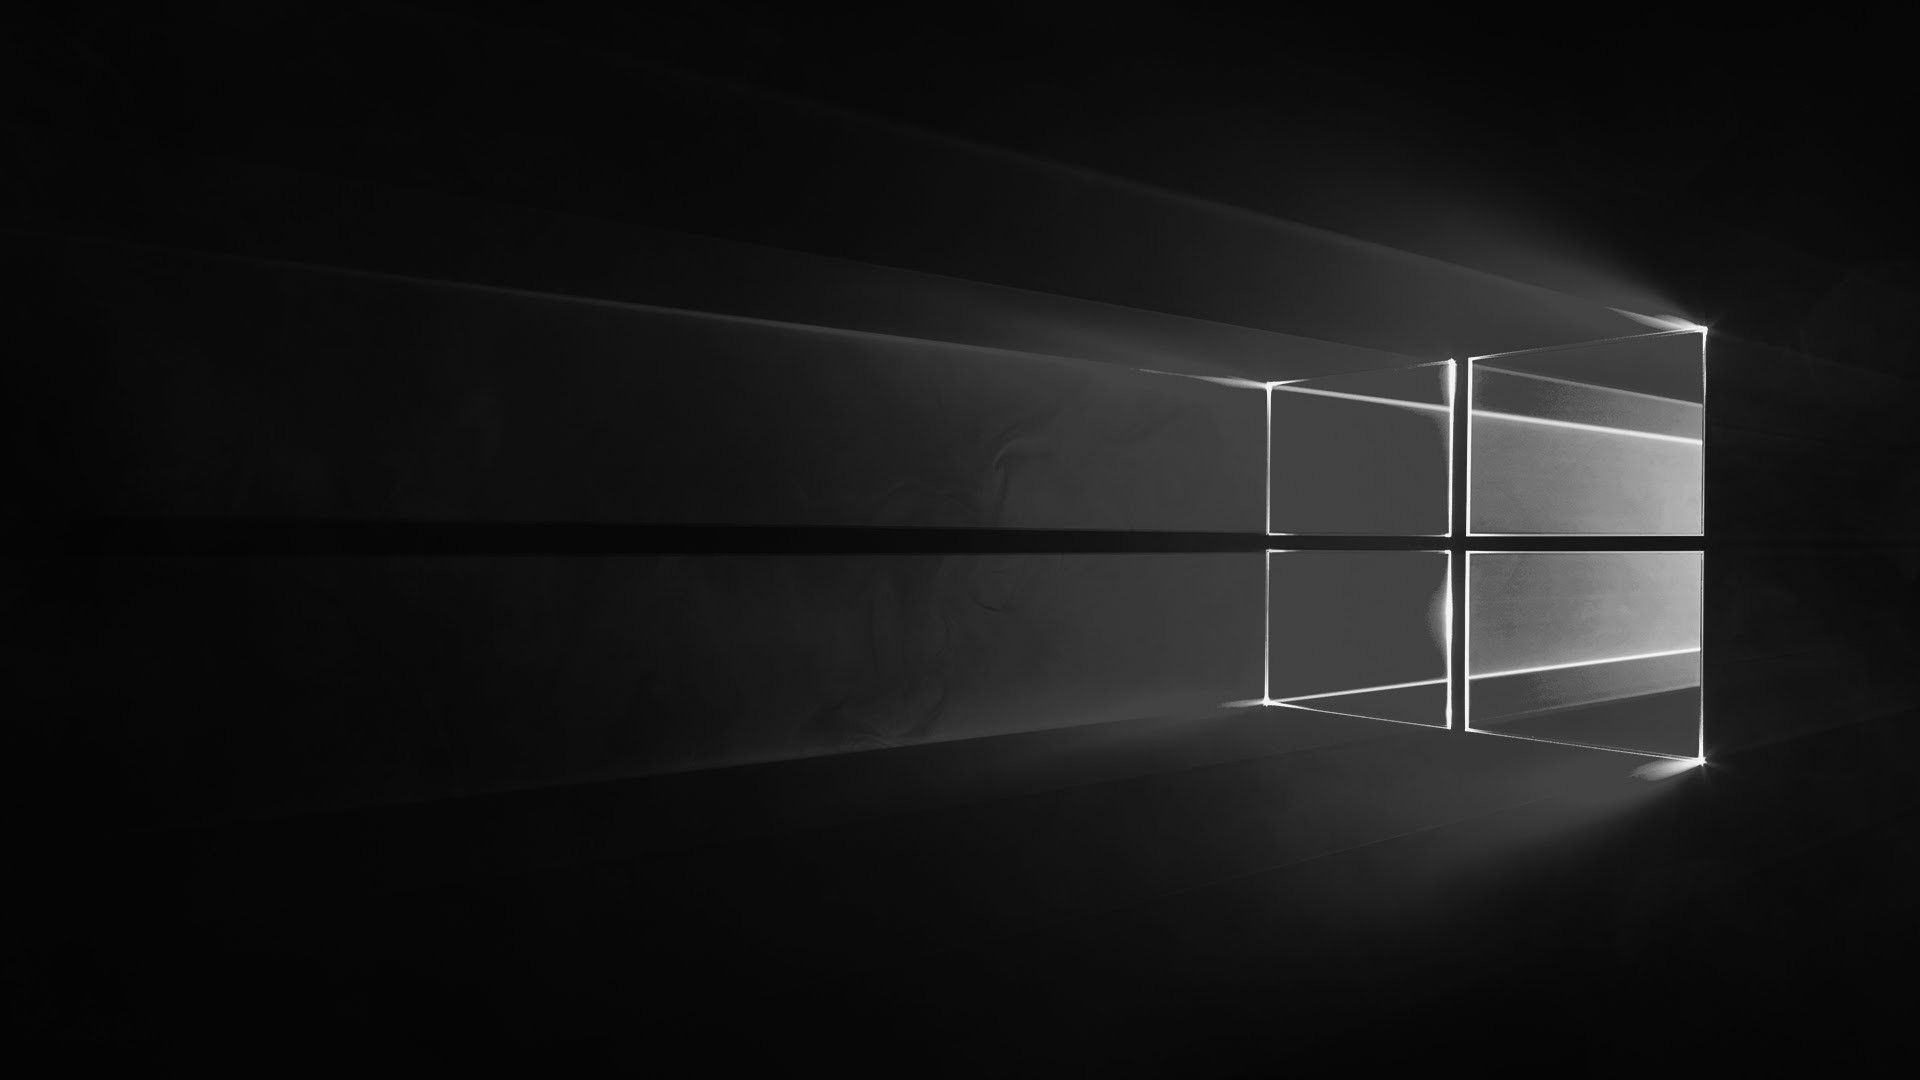 1920x1080 Windows 10 Black Hd Wallpaper In 2019 Black Hd